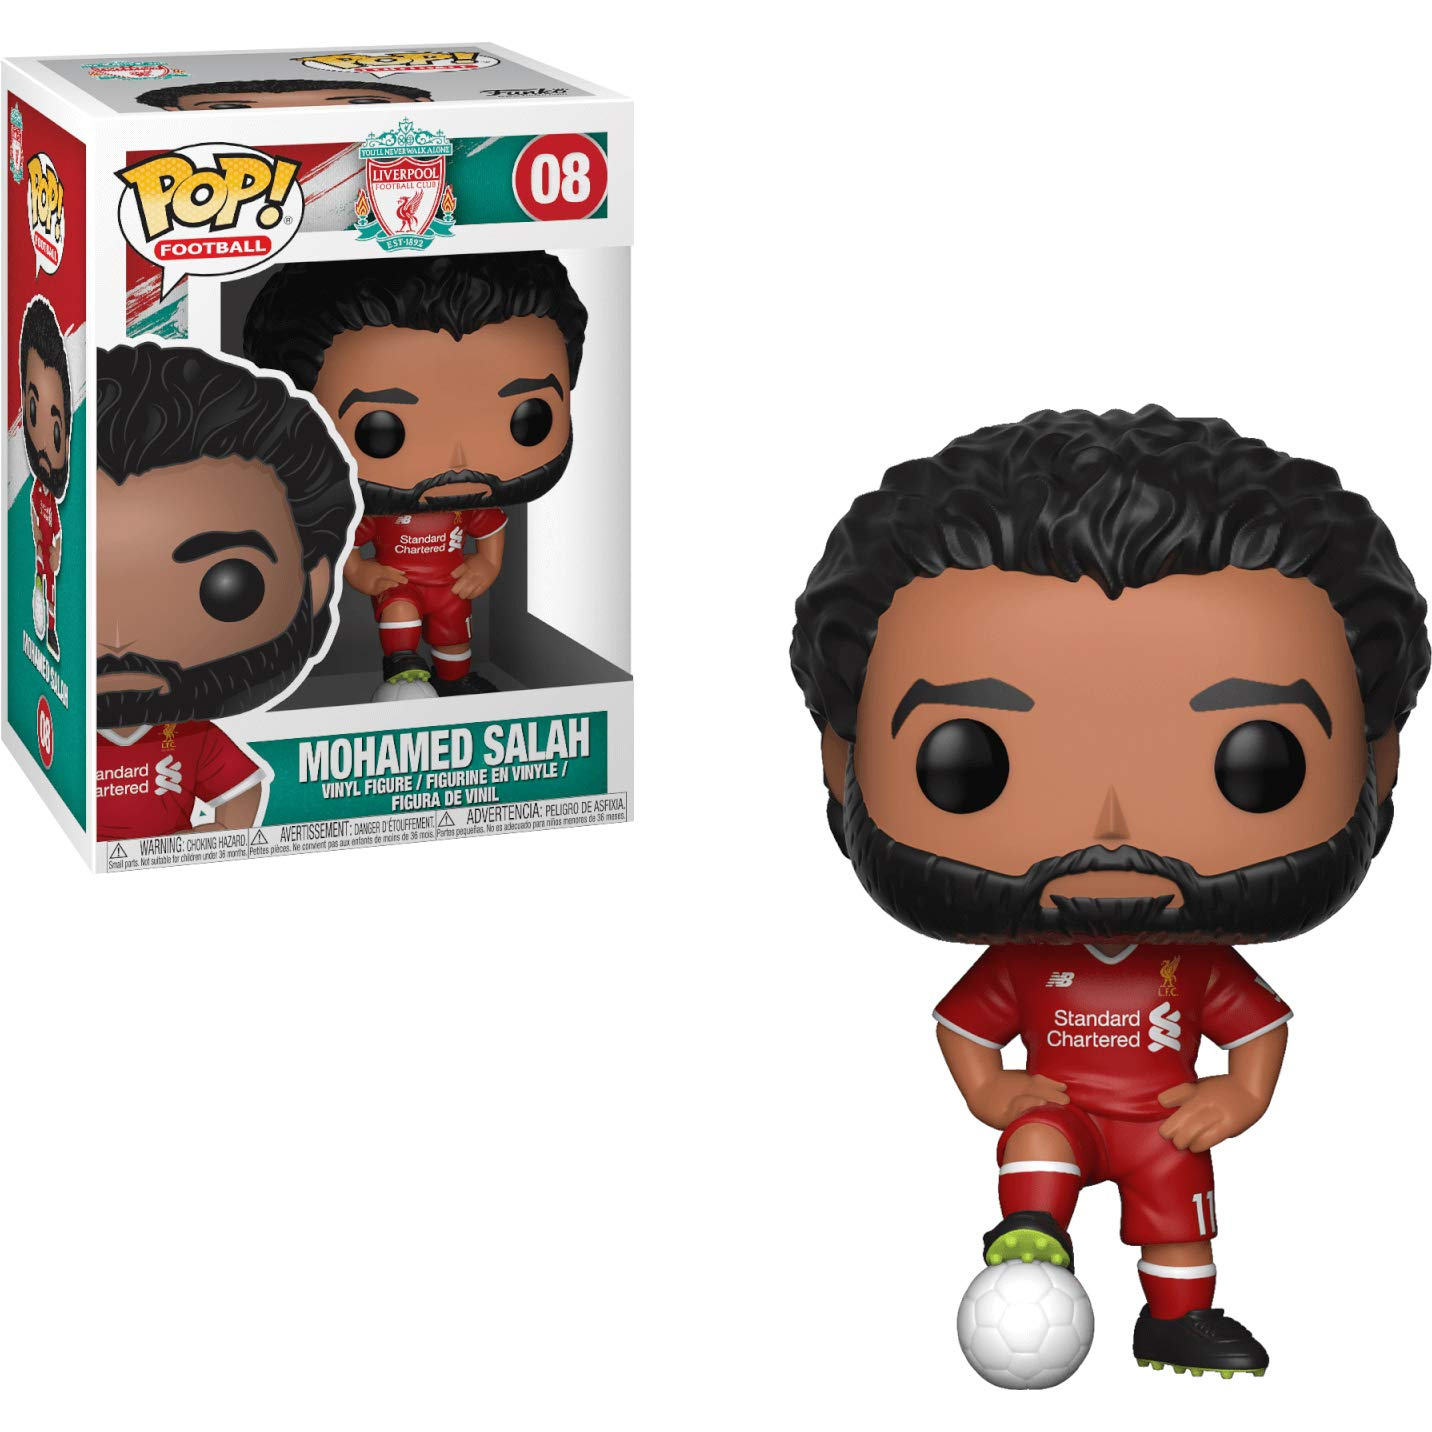 Liverpool Funko BCC9U24M Mohamed Salah Compatible PET Plastic Graphical Protector Bundle Football // Soccer Vinyl Figure /& 1 POP #008 // 29217 - B : x POP